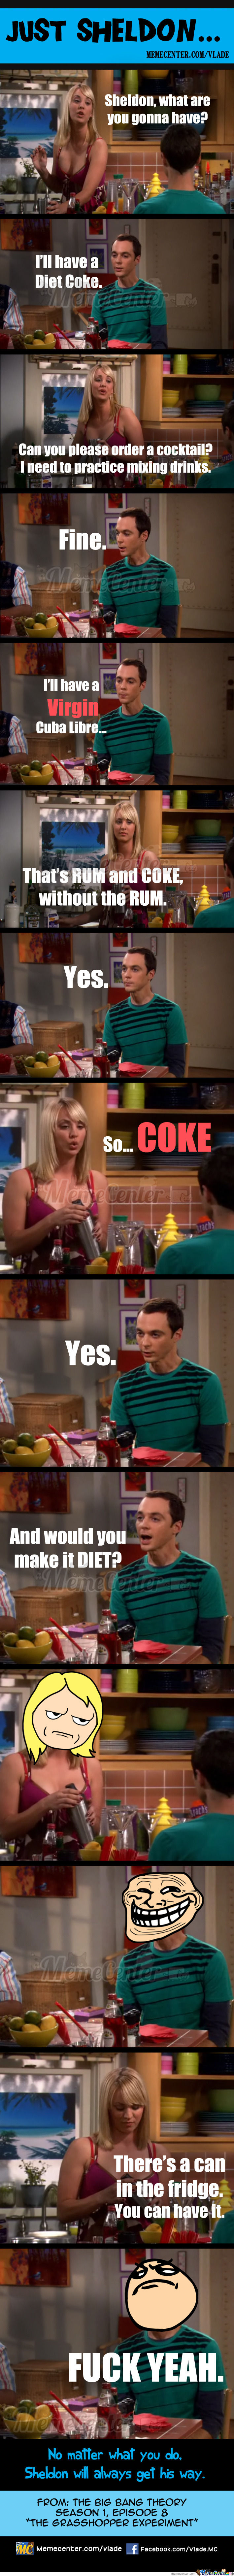 Just Sheldon...